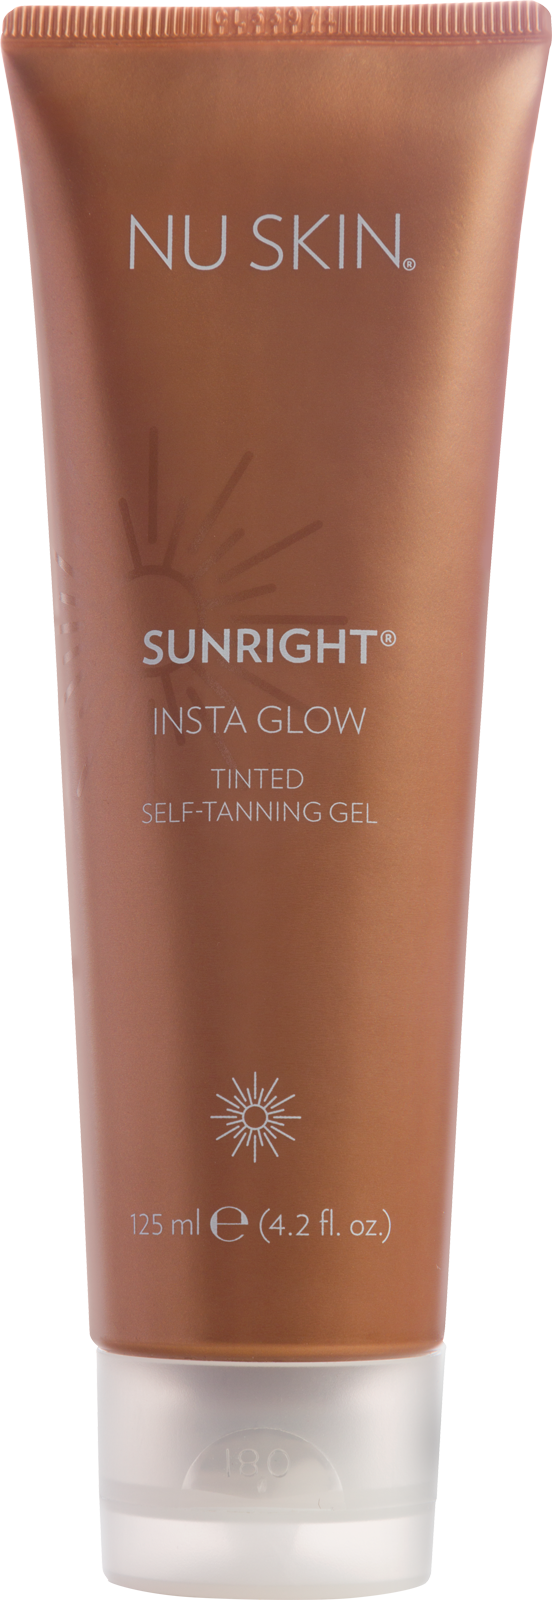 alt - https://static.comunicae.com/photos/notas/1204881/1558614304_Nu_Skin_Sunright_Insta_Glow.png